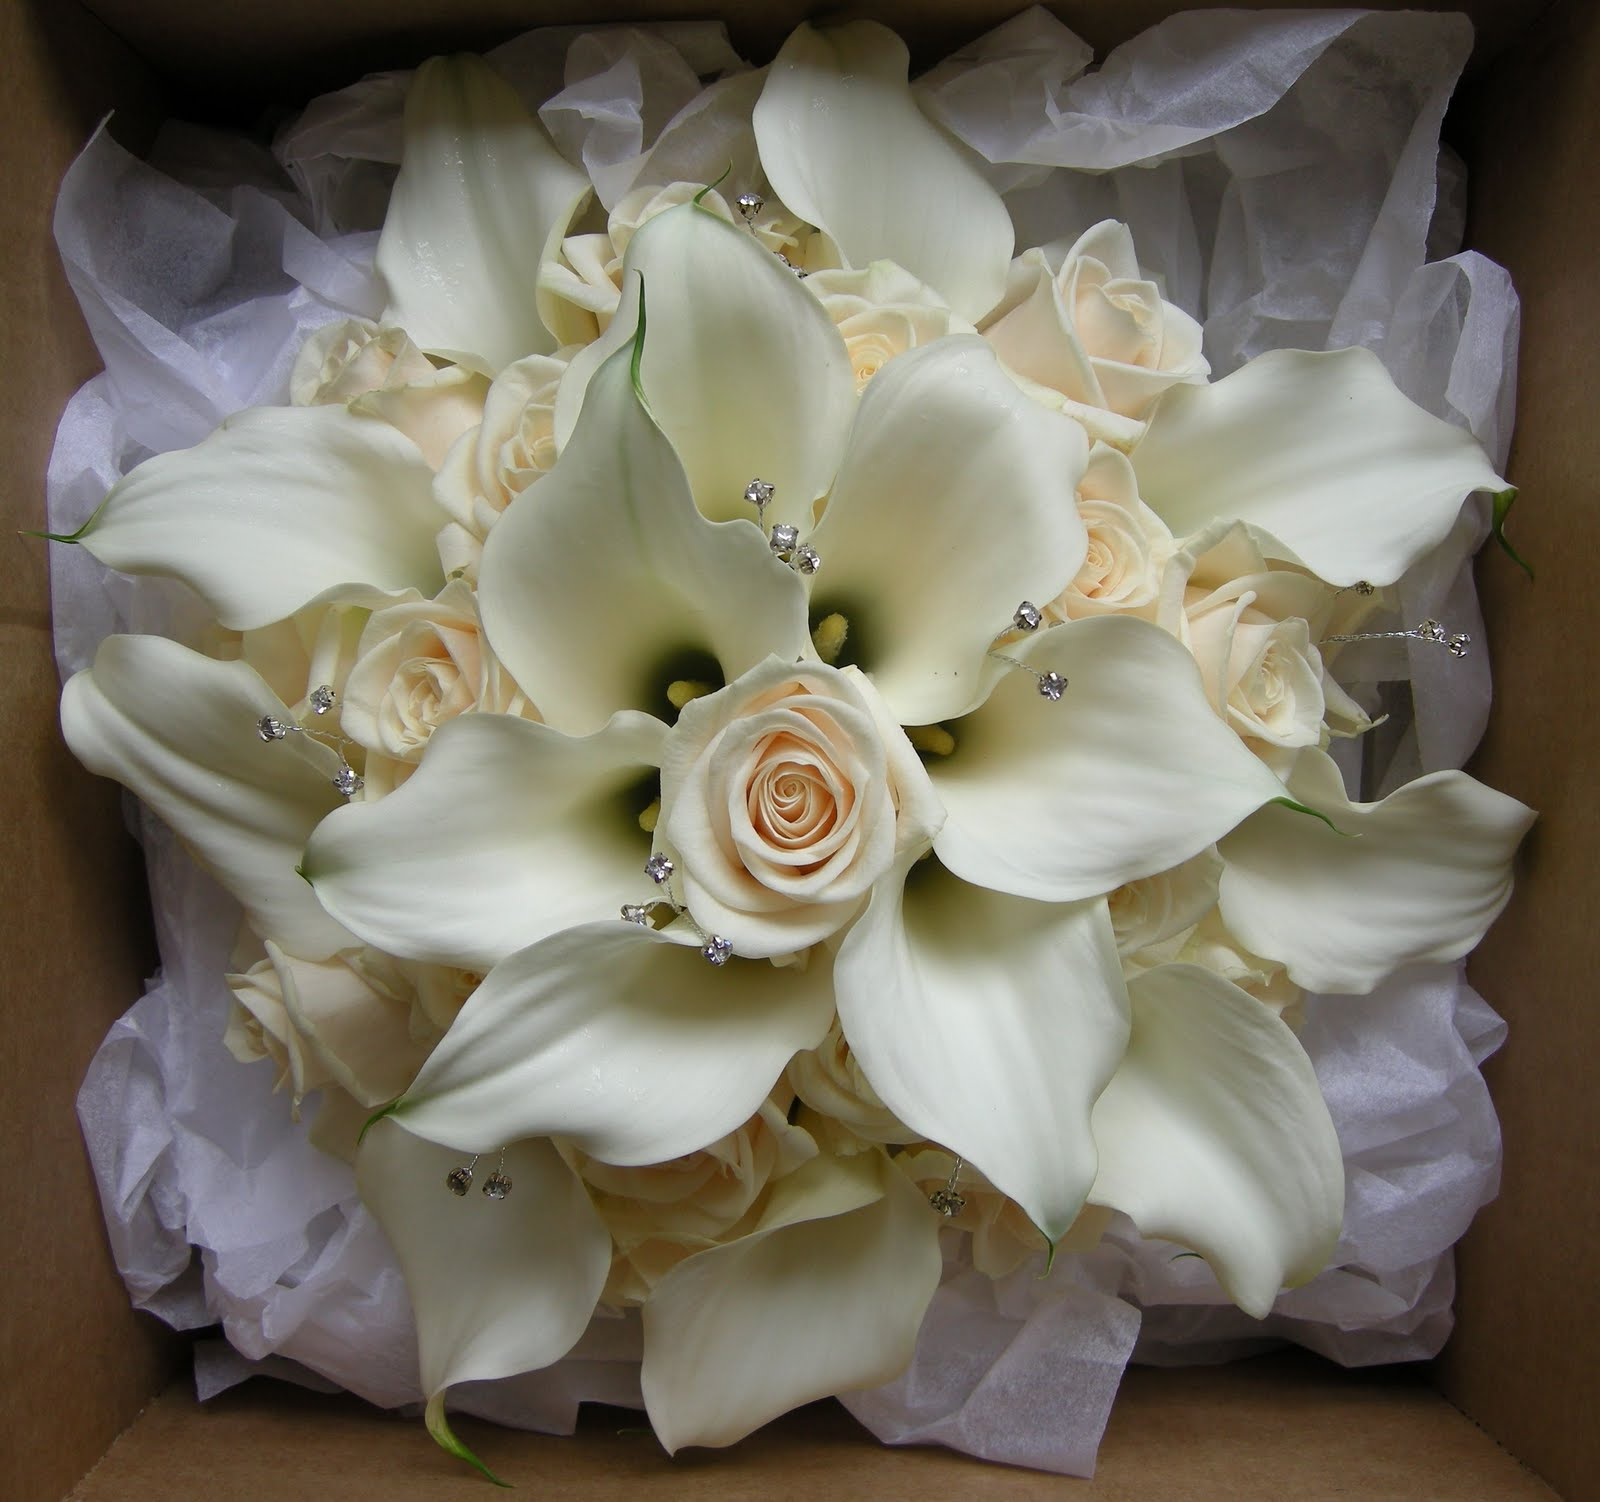 rose and calla lily wedding bouquets photo - 1